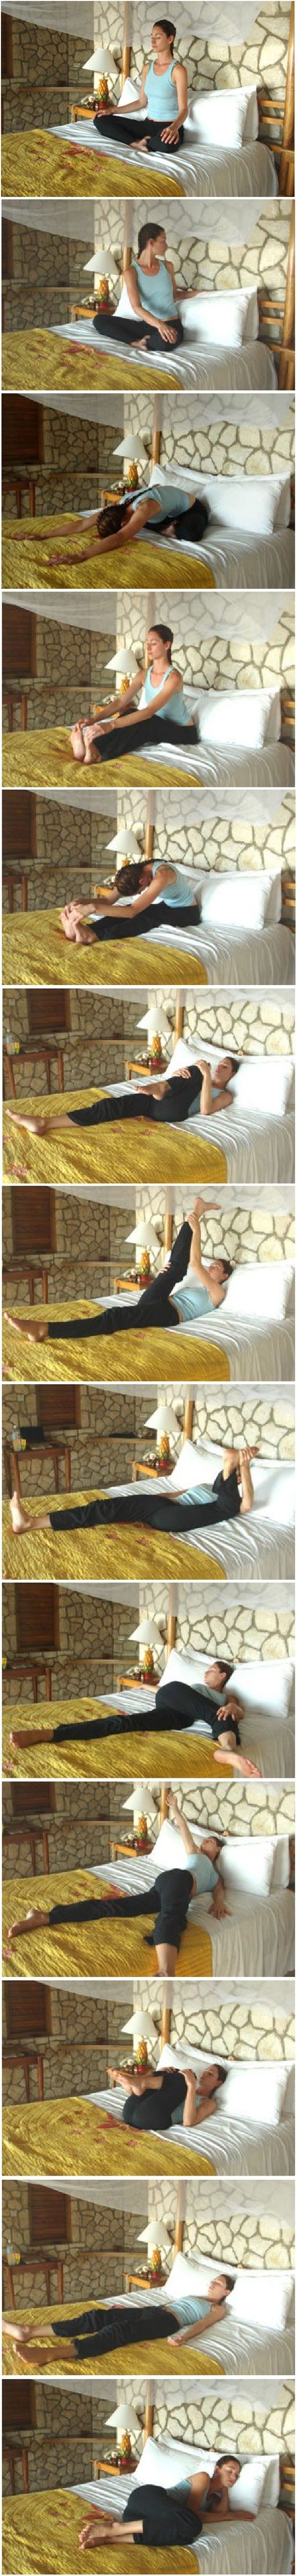 Bedtime Yoga Sequence for Better Sleep